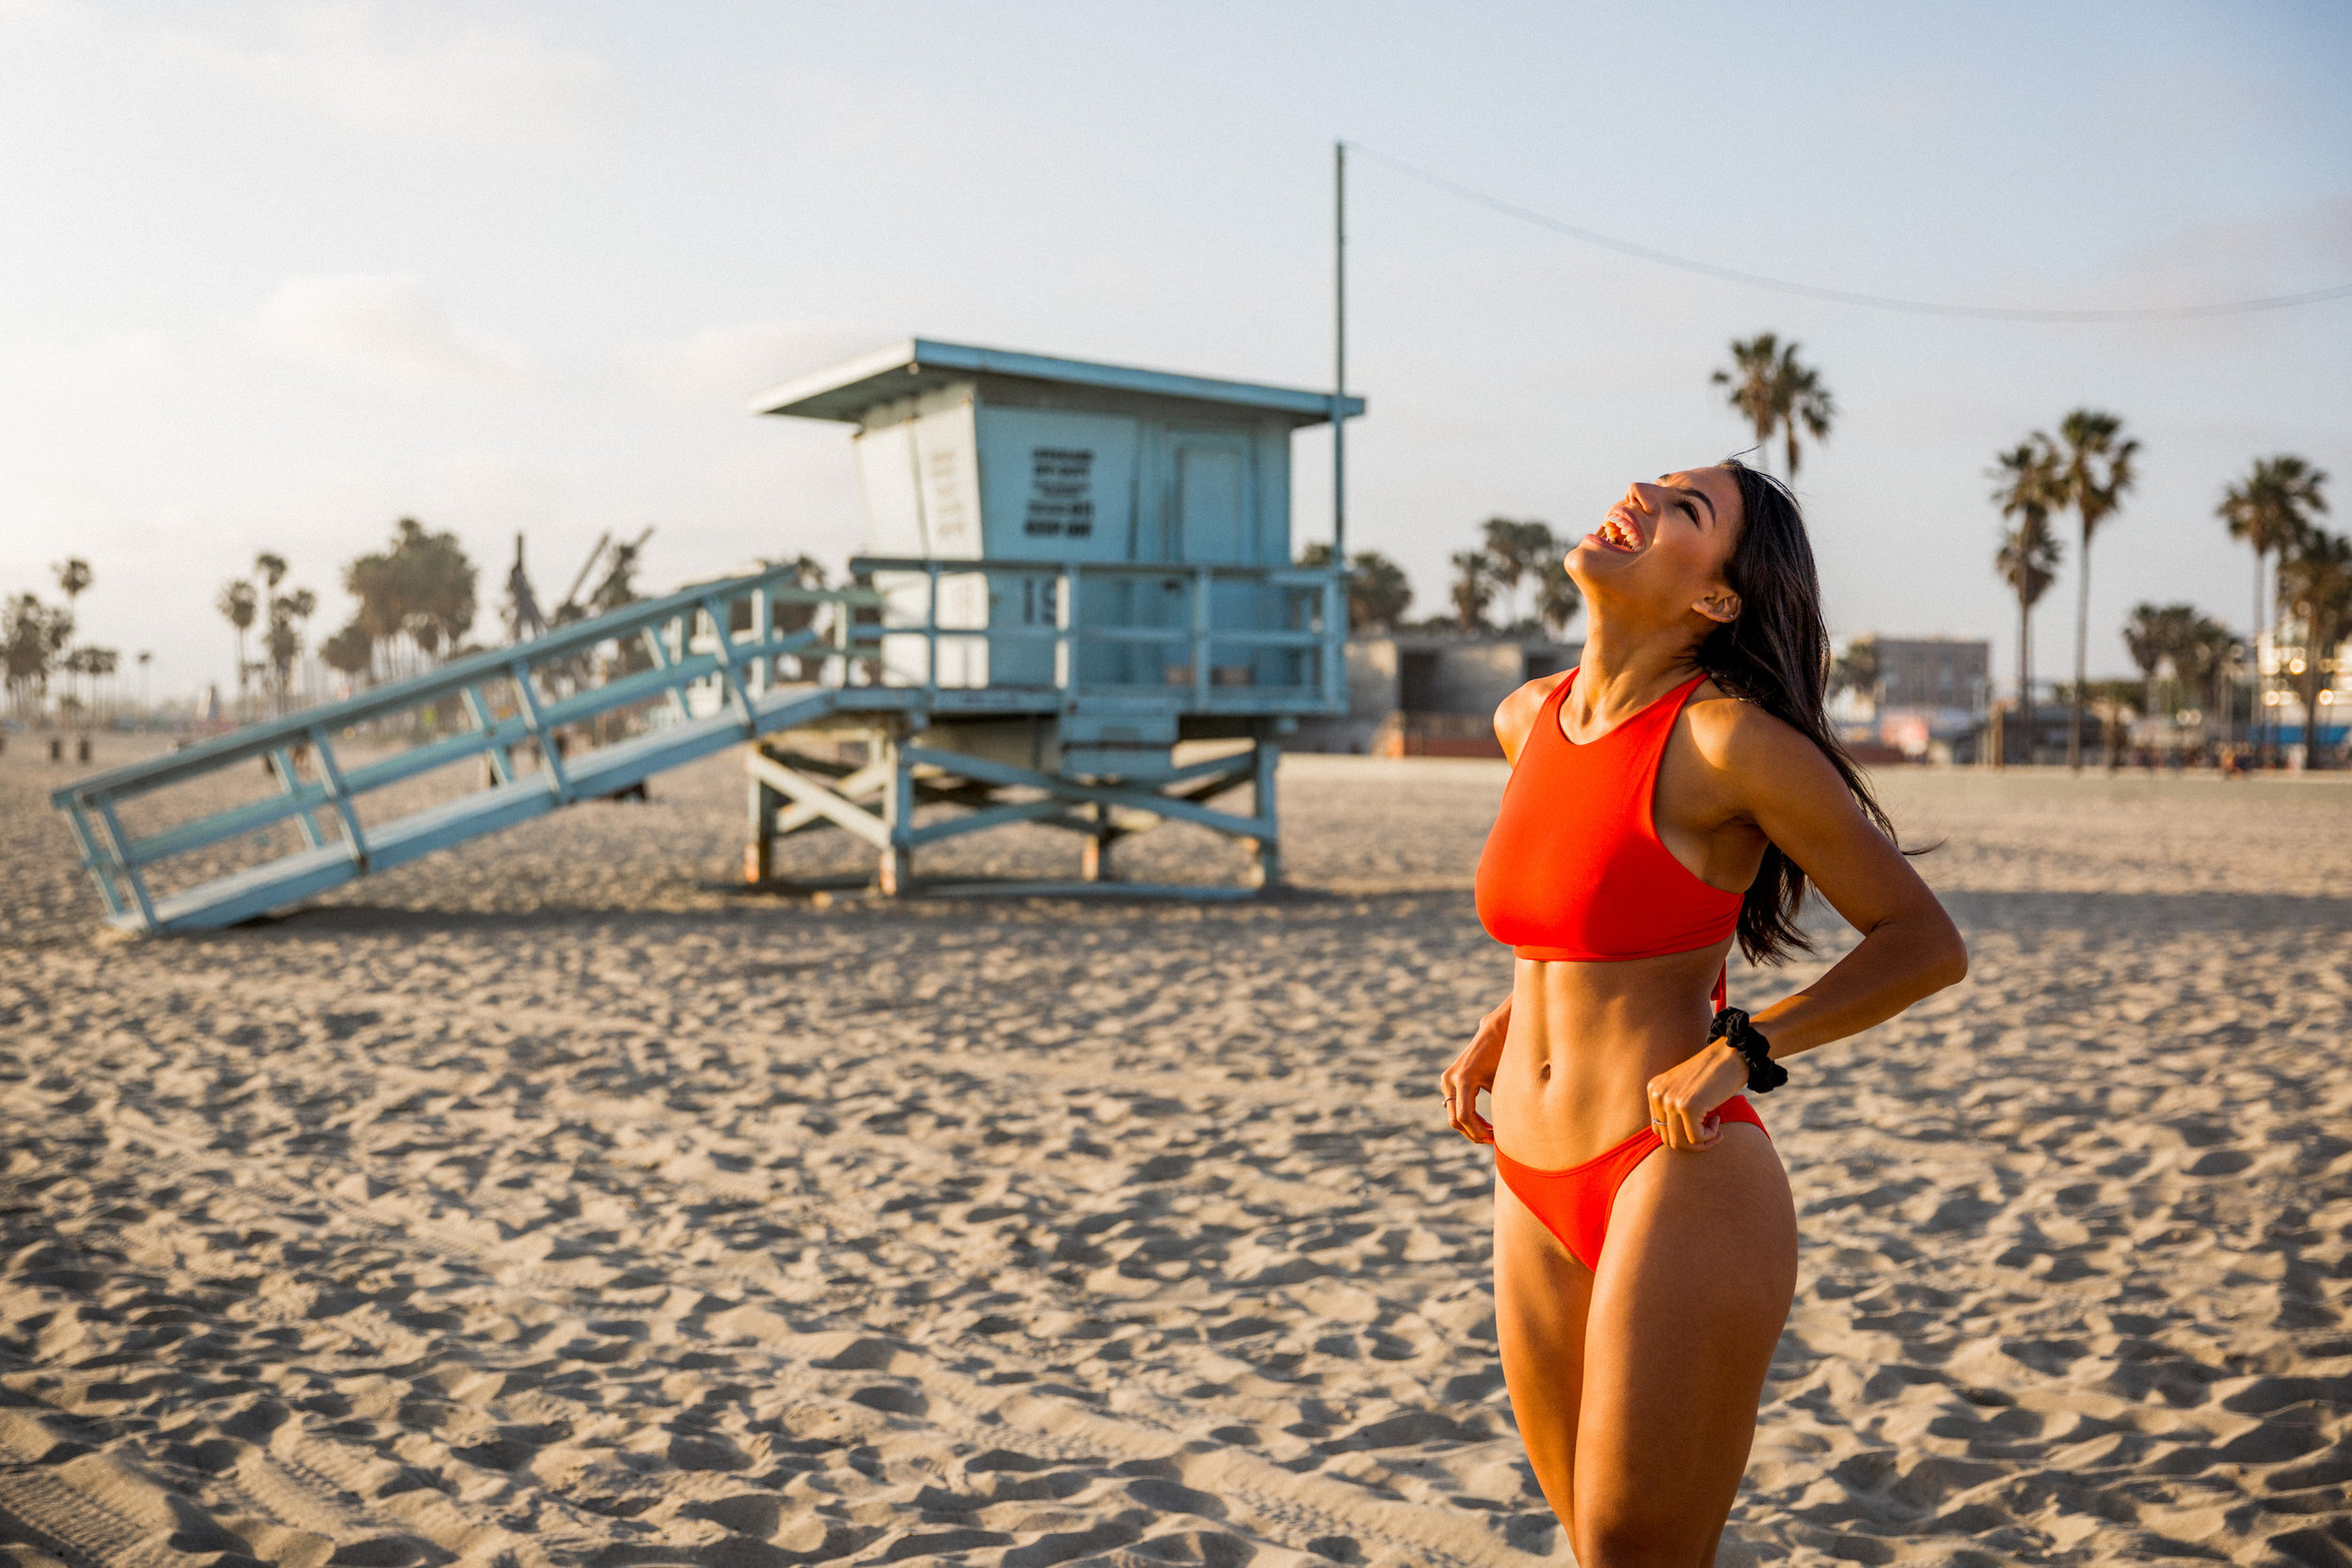 """The  Haute Halter  is going to be my key to a summer of successful beach looks.  The halter top offers amazing coverage that can be seamlessly transitioned from ocean swim to sunset stroll."" - Kendra Lauren  -continue reading.   Photography by Stephanie Lohde"